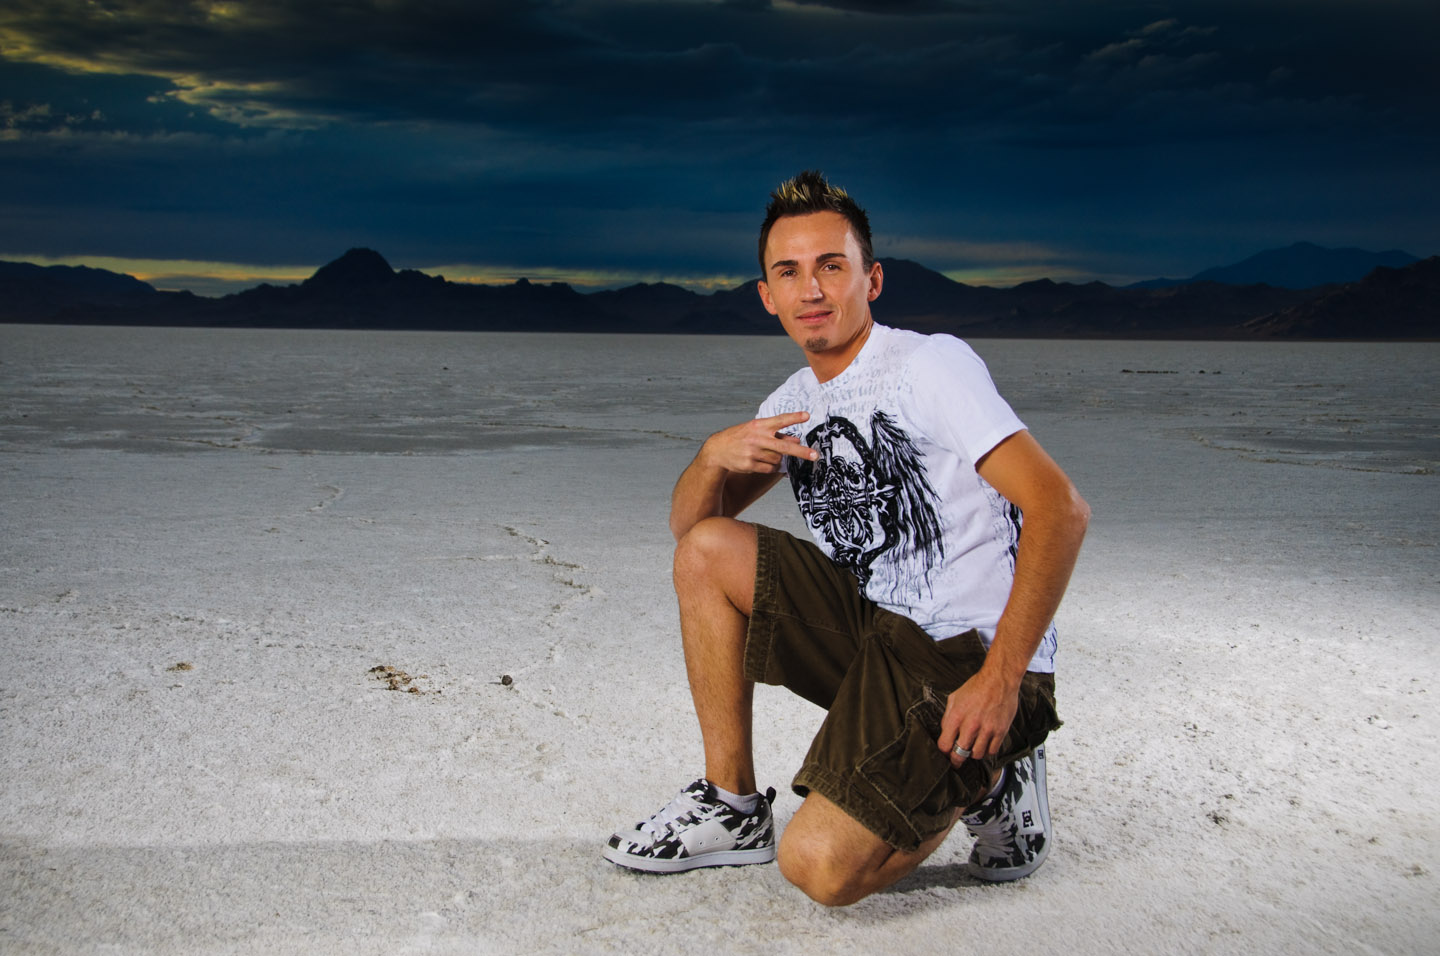 Stephen on the Bonneville Salt Flats